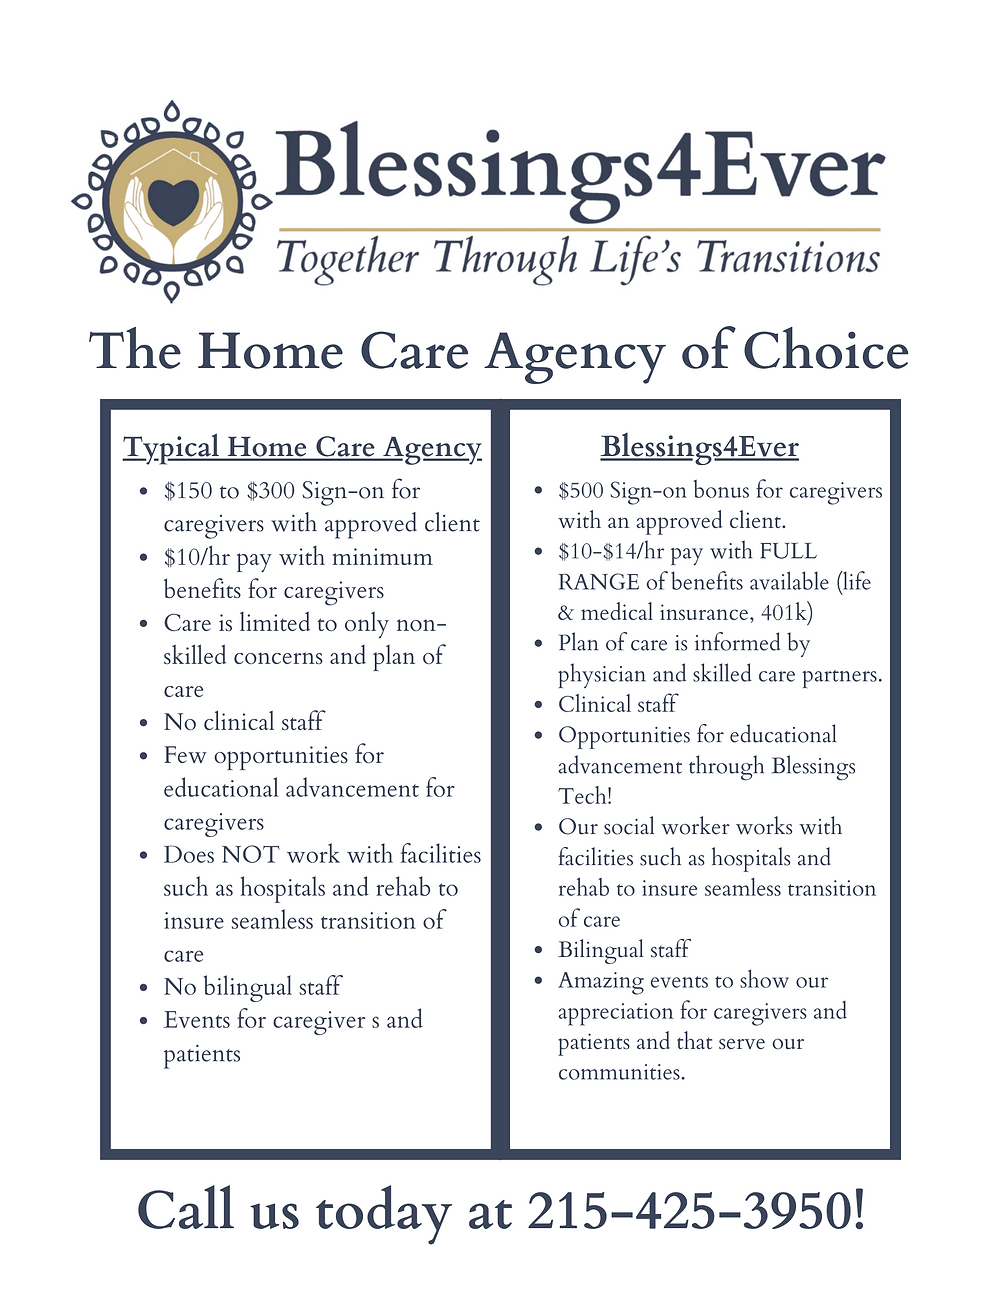 Blessings4Ever is different than the typical Philadelphia home care agency.